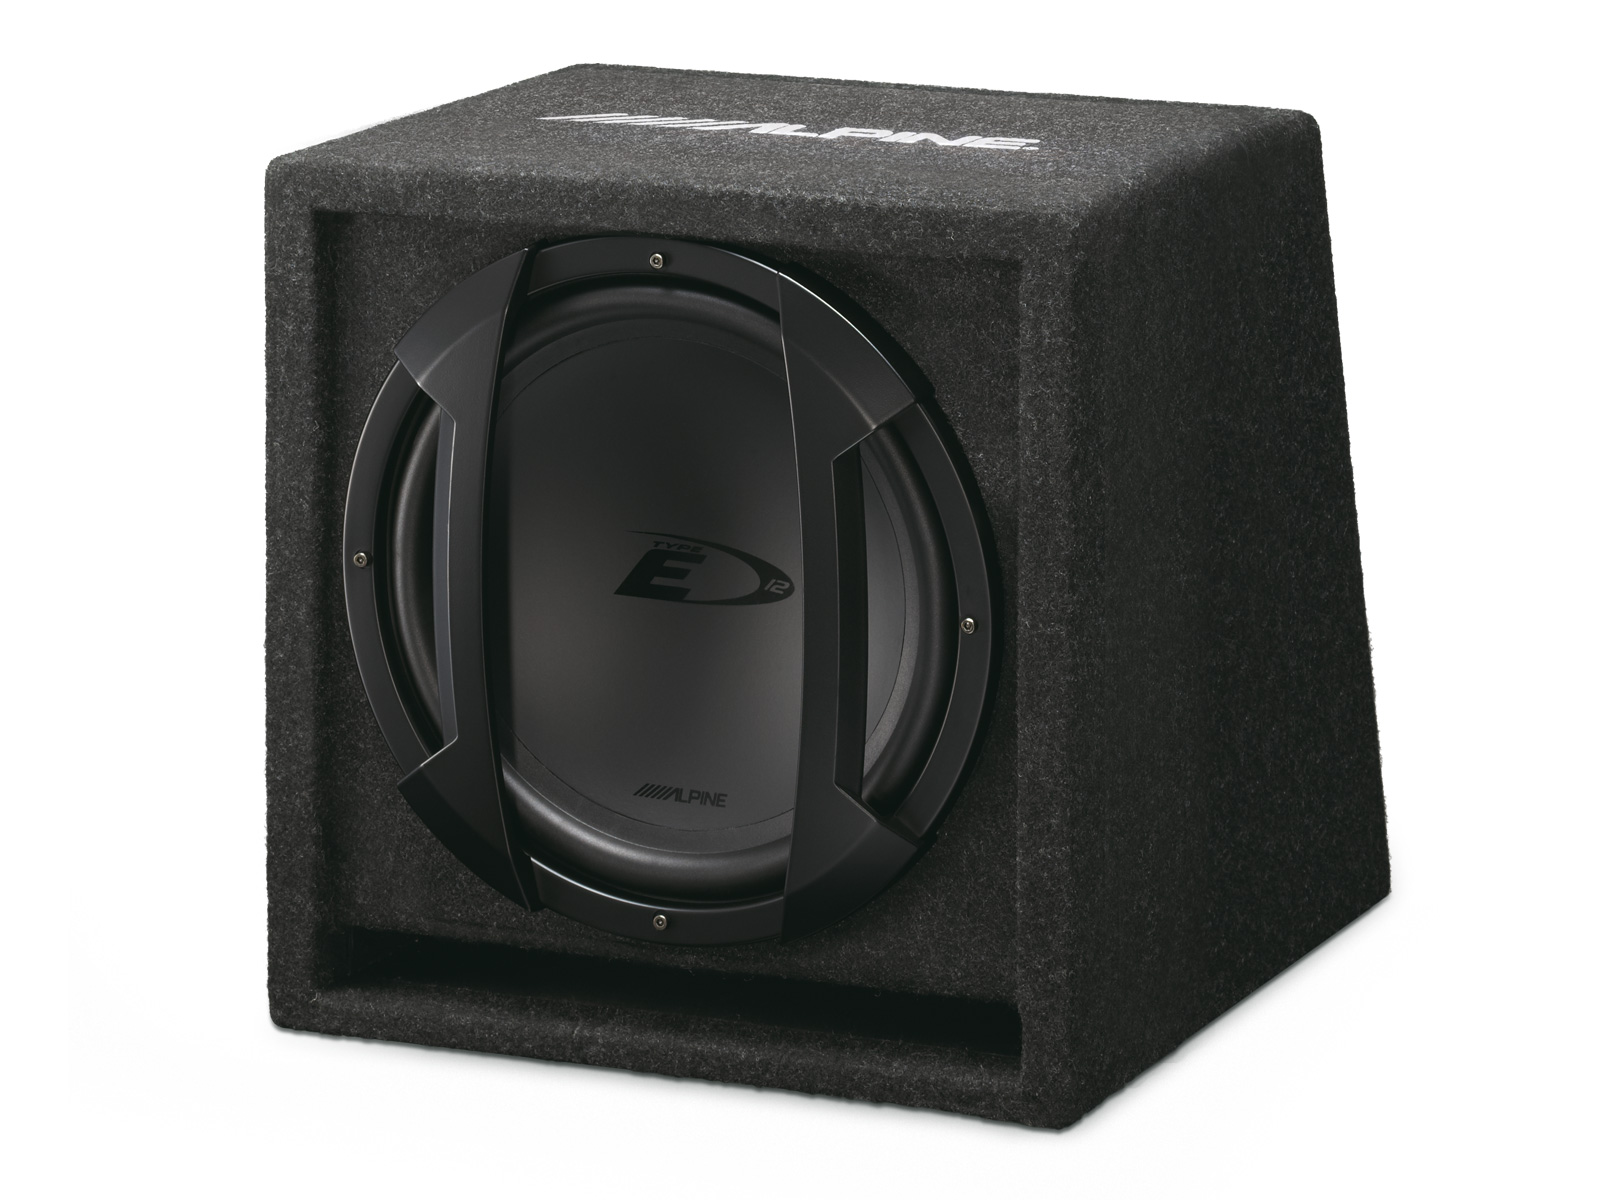 http://www.alpine.ru/fileadmin/images/MainNavigation/Products/Product_pics/15_Subwoofers/04_TypeE_Subwoofers/SBE1244BR/productpic_SBE-1244BR_01.jpg